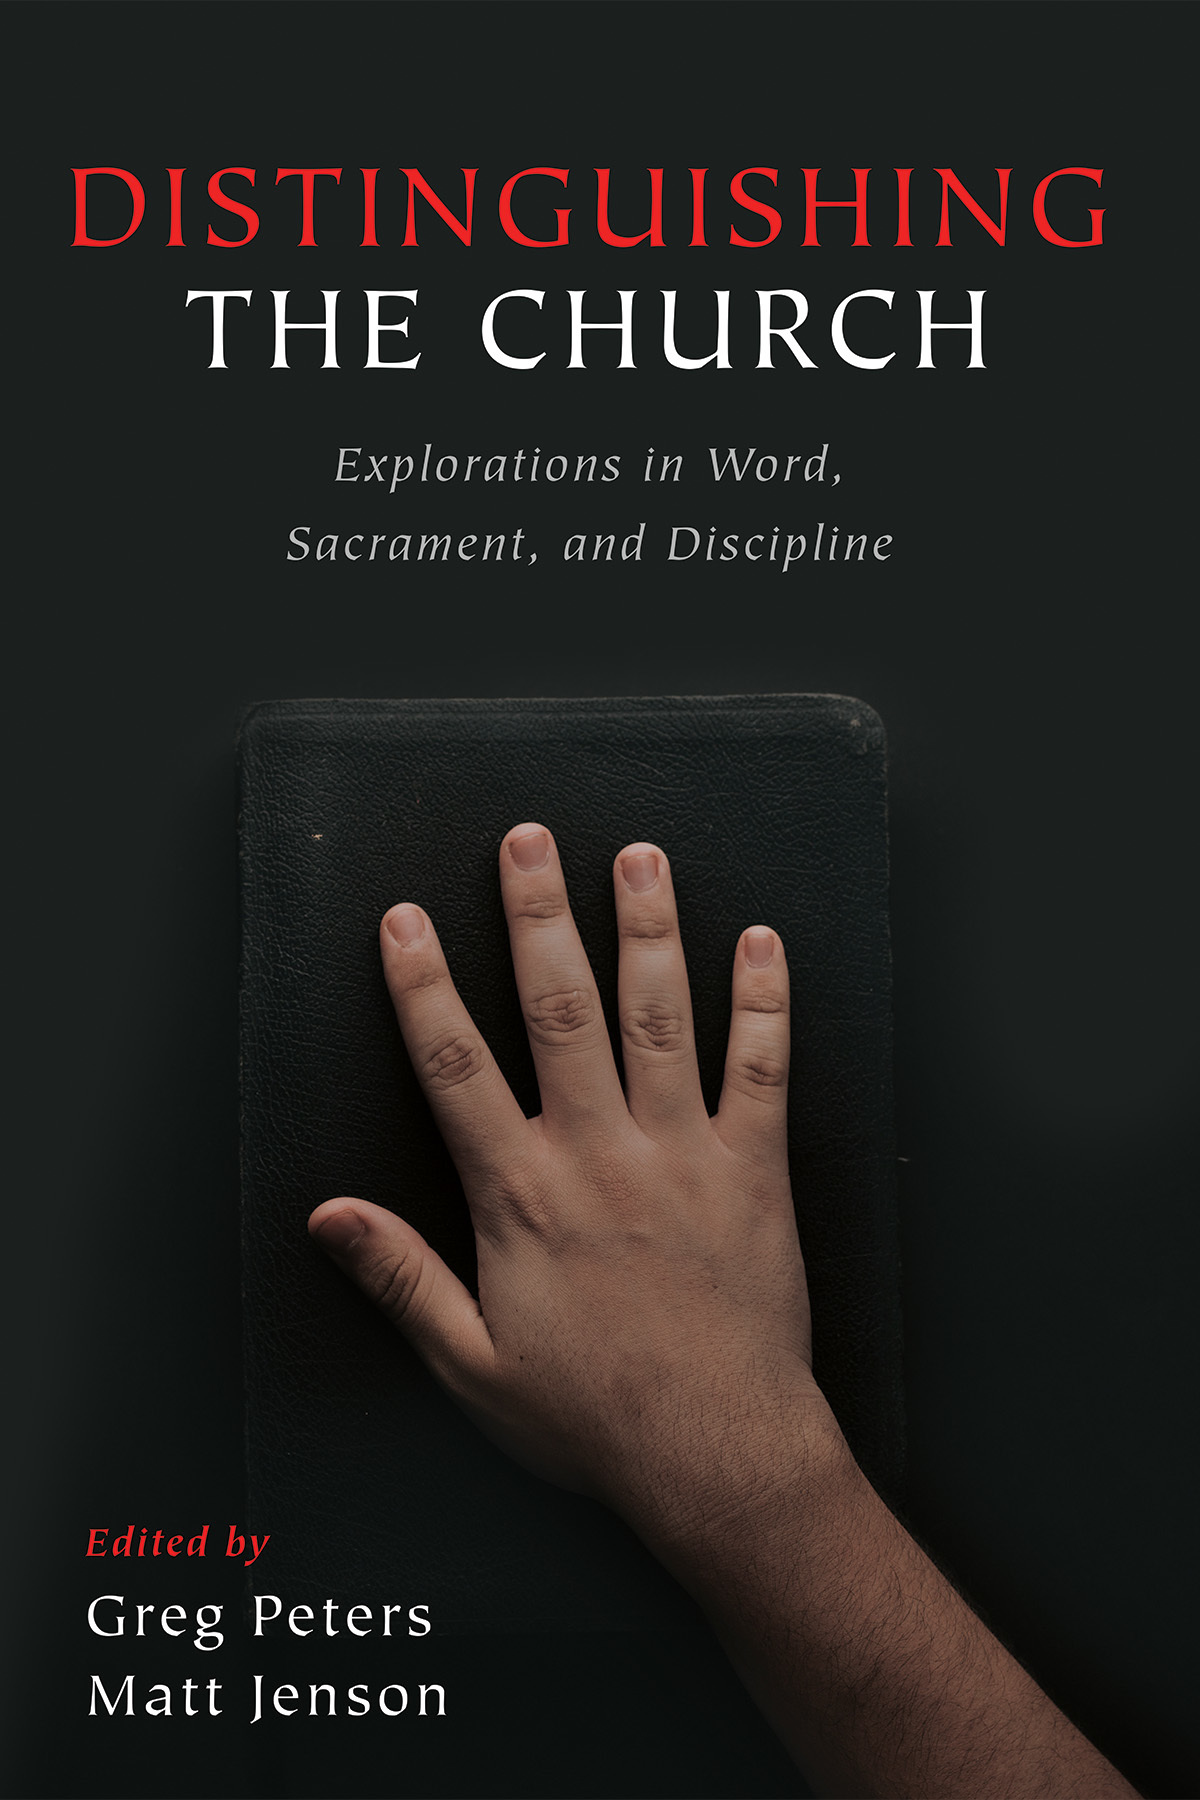 Book cover with text: Distinguishing the Church, Explorations in Word, Sacrament, and Discipline, edited by Greg Peters and Matt Jenson.